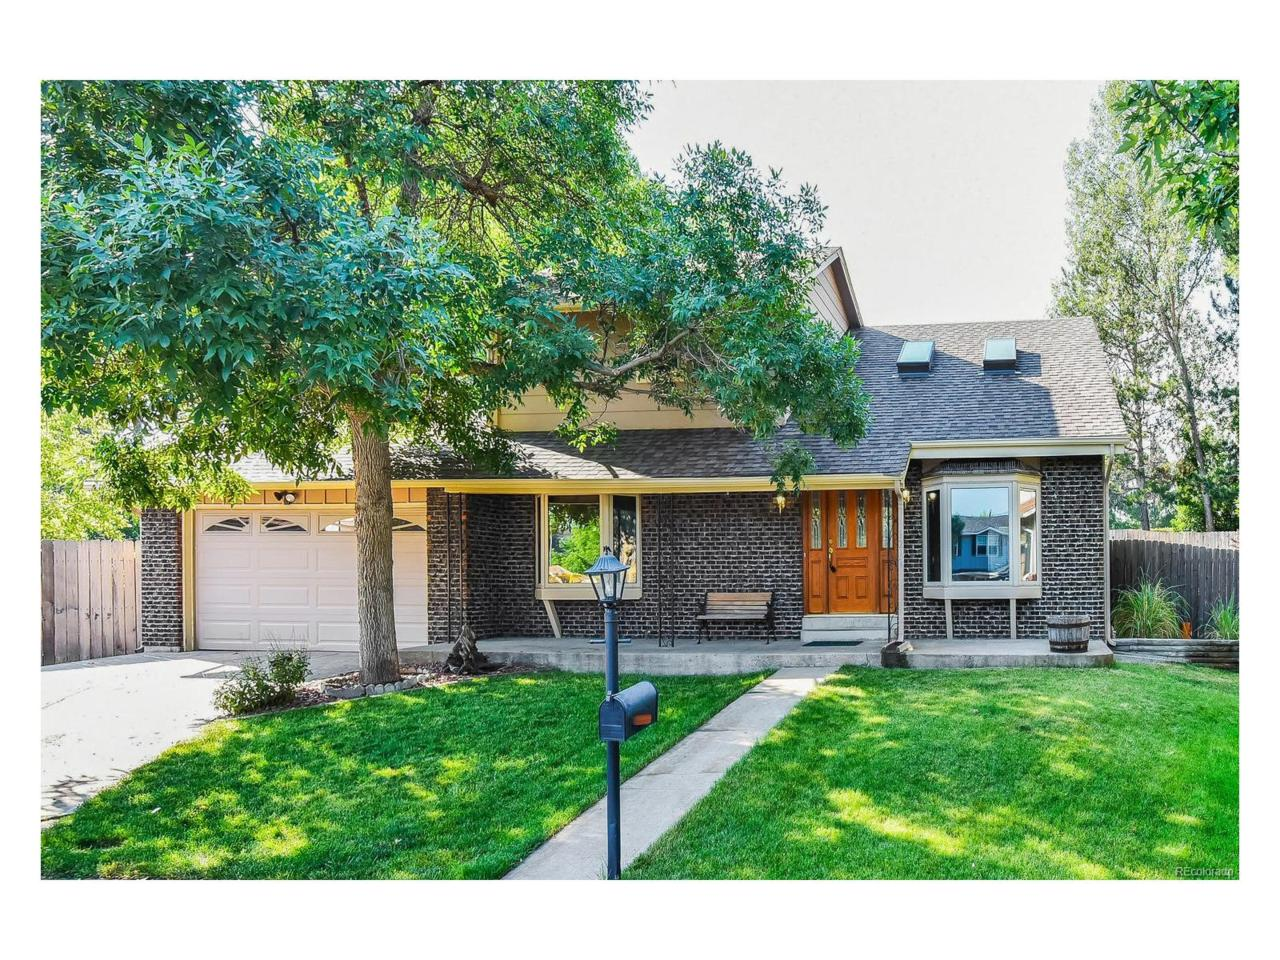 9292 W 90th Circle, Westminster, CO 80021 (MLS #9271871) :: 8z Real Estate